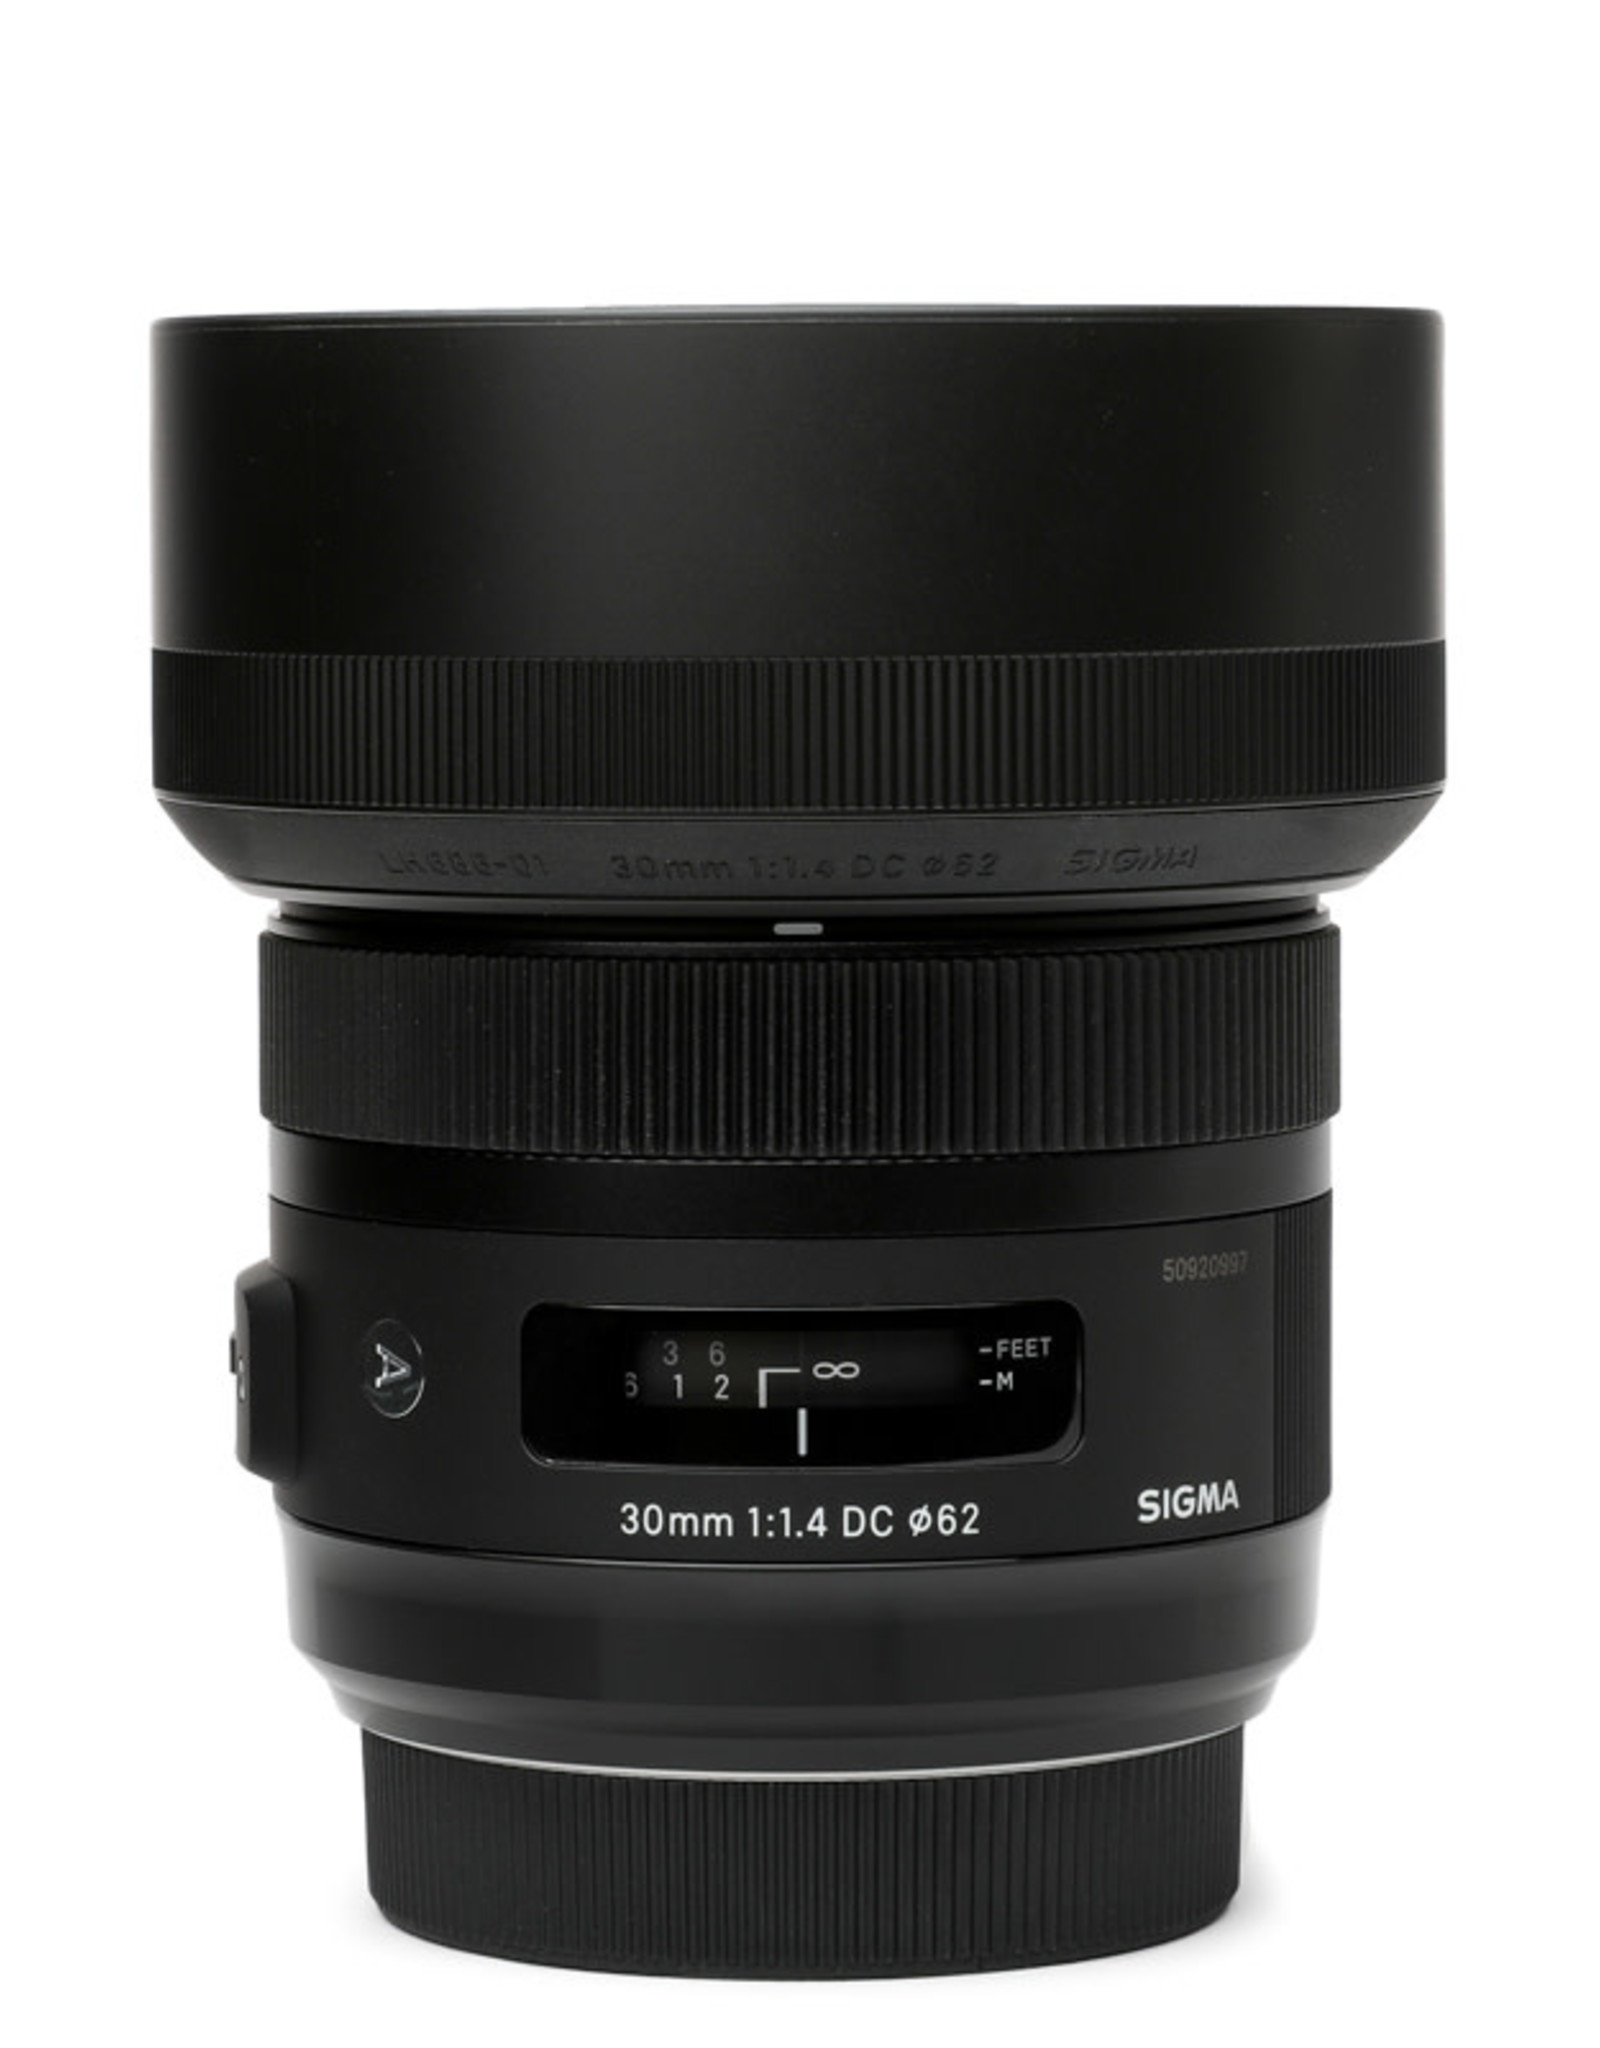 Sigma Sigma 30mm f/1.4 DC HSM Art Lens for Sony A